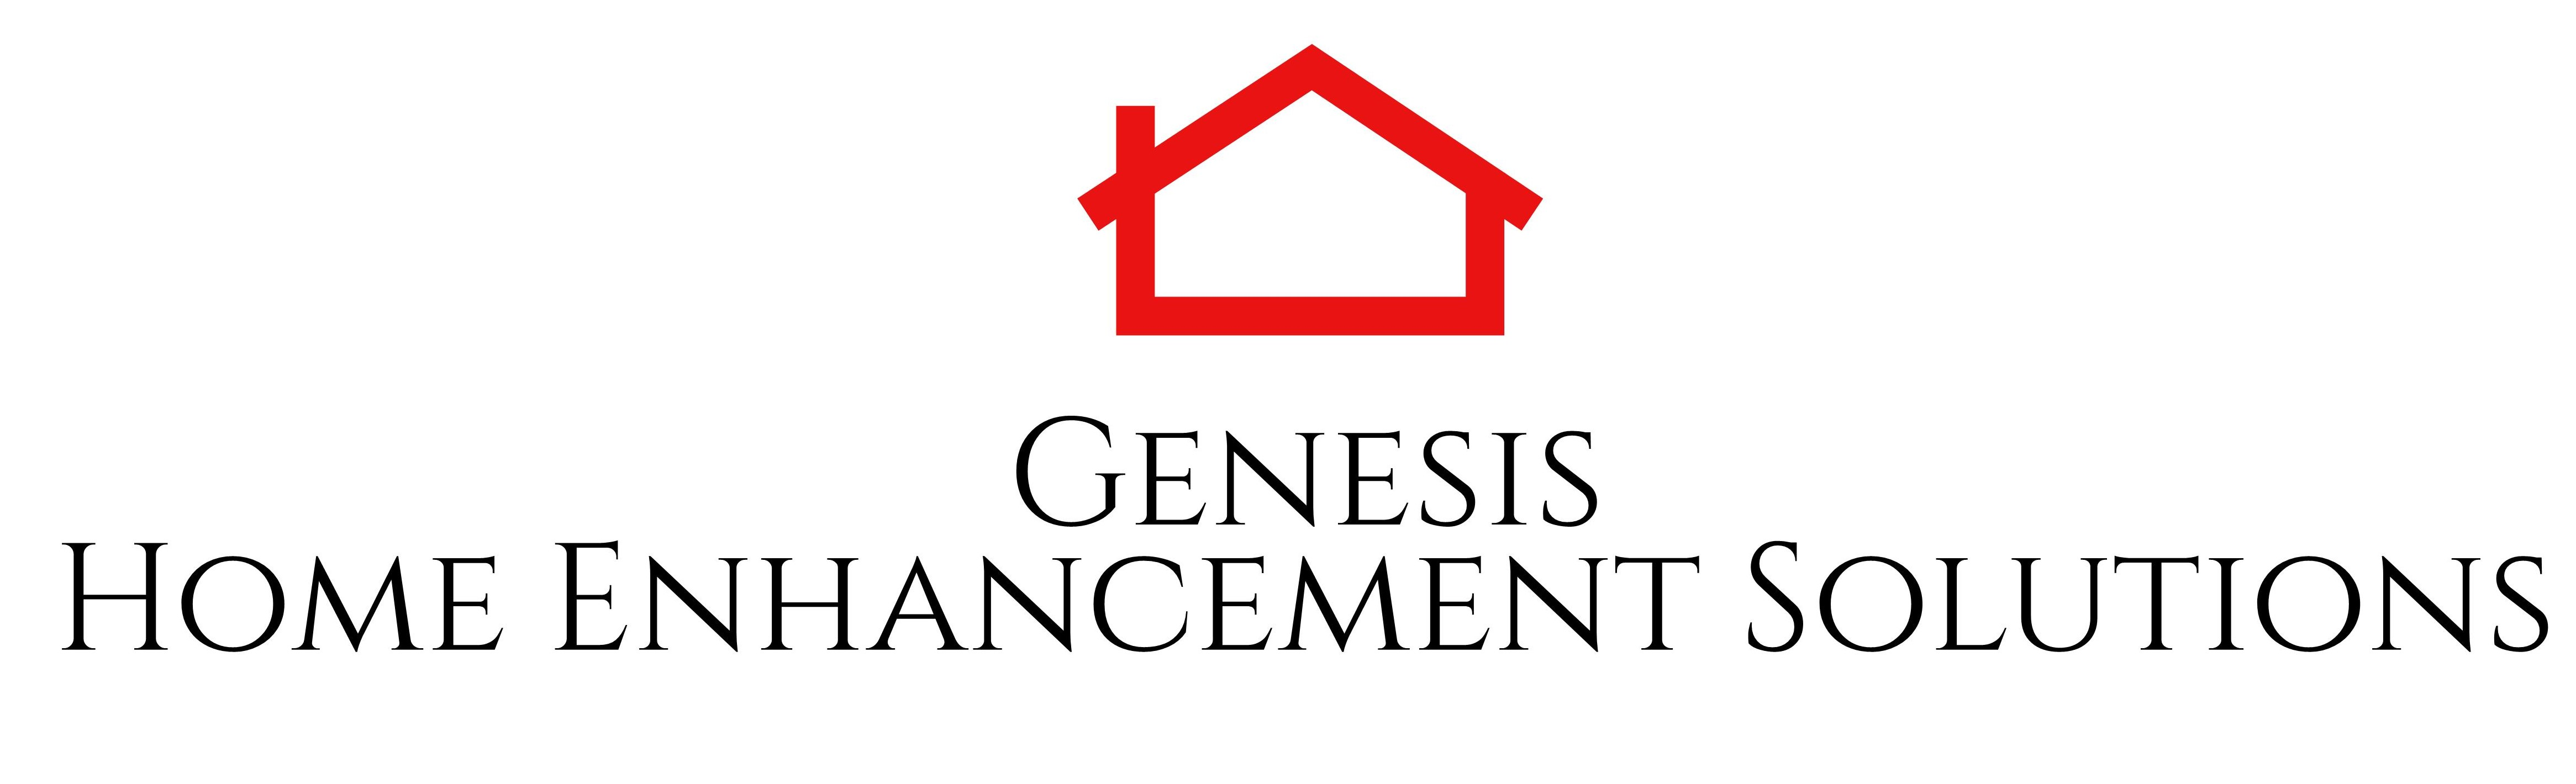 Genesis Home Enhancement Solutions